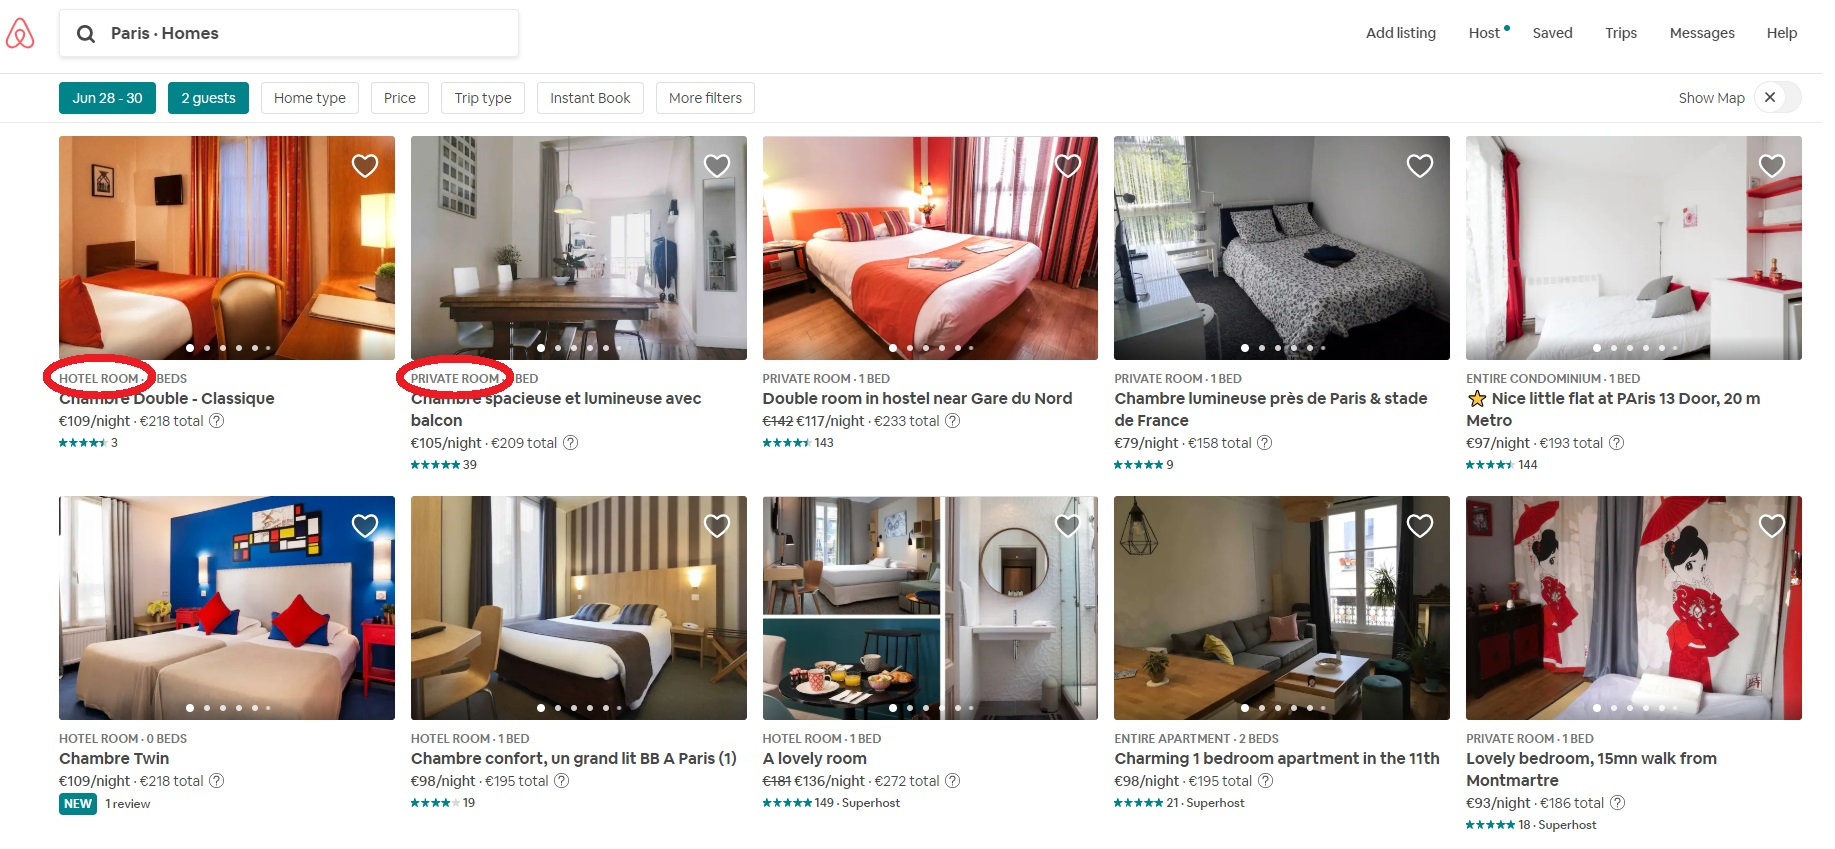 Aibnb price offers bis